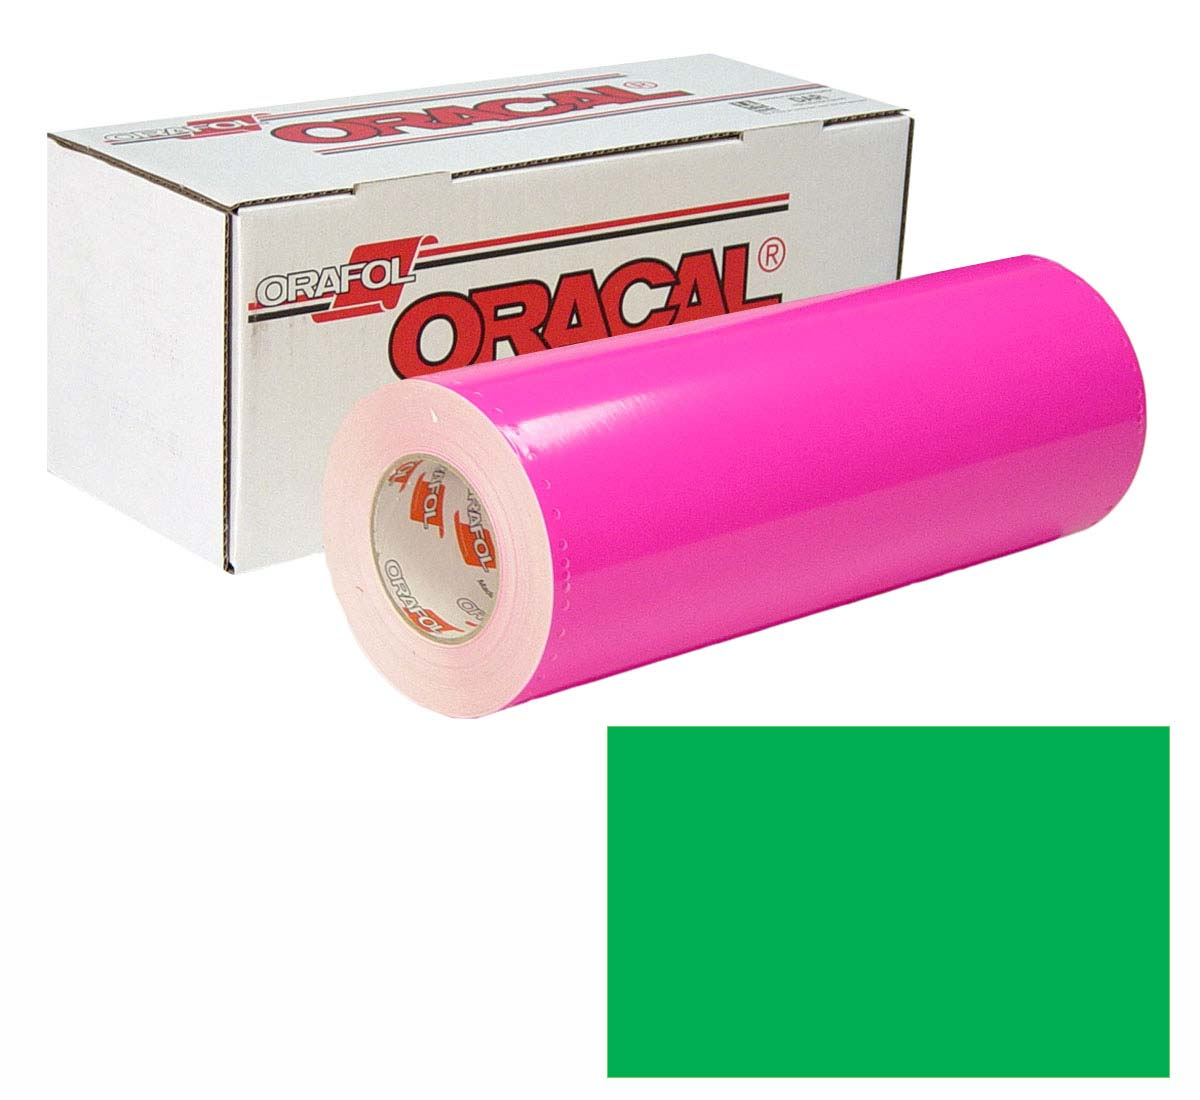 ORACAL 7510 Fluor 30In X10Yd 069 Green